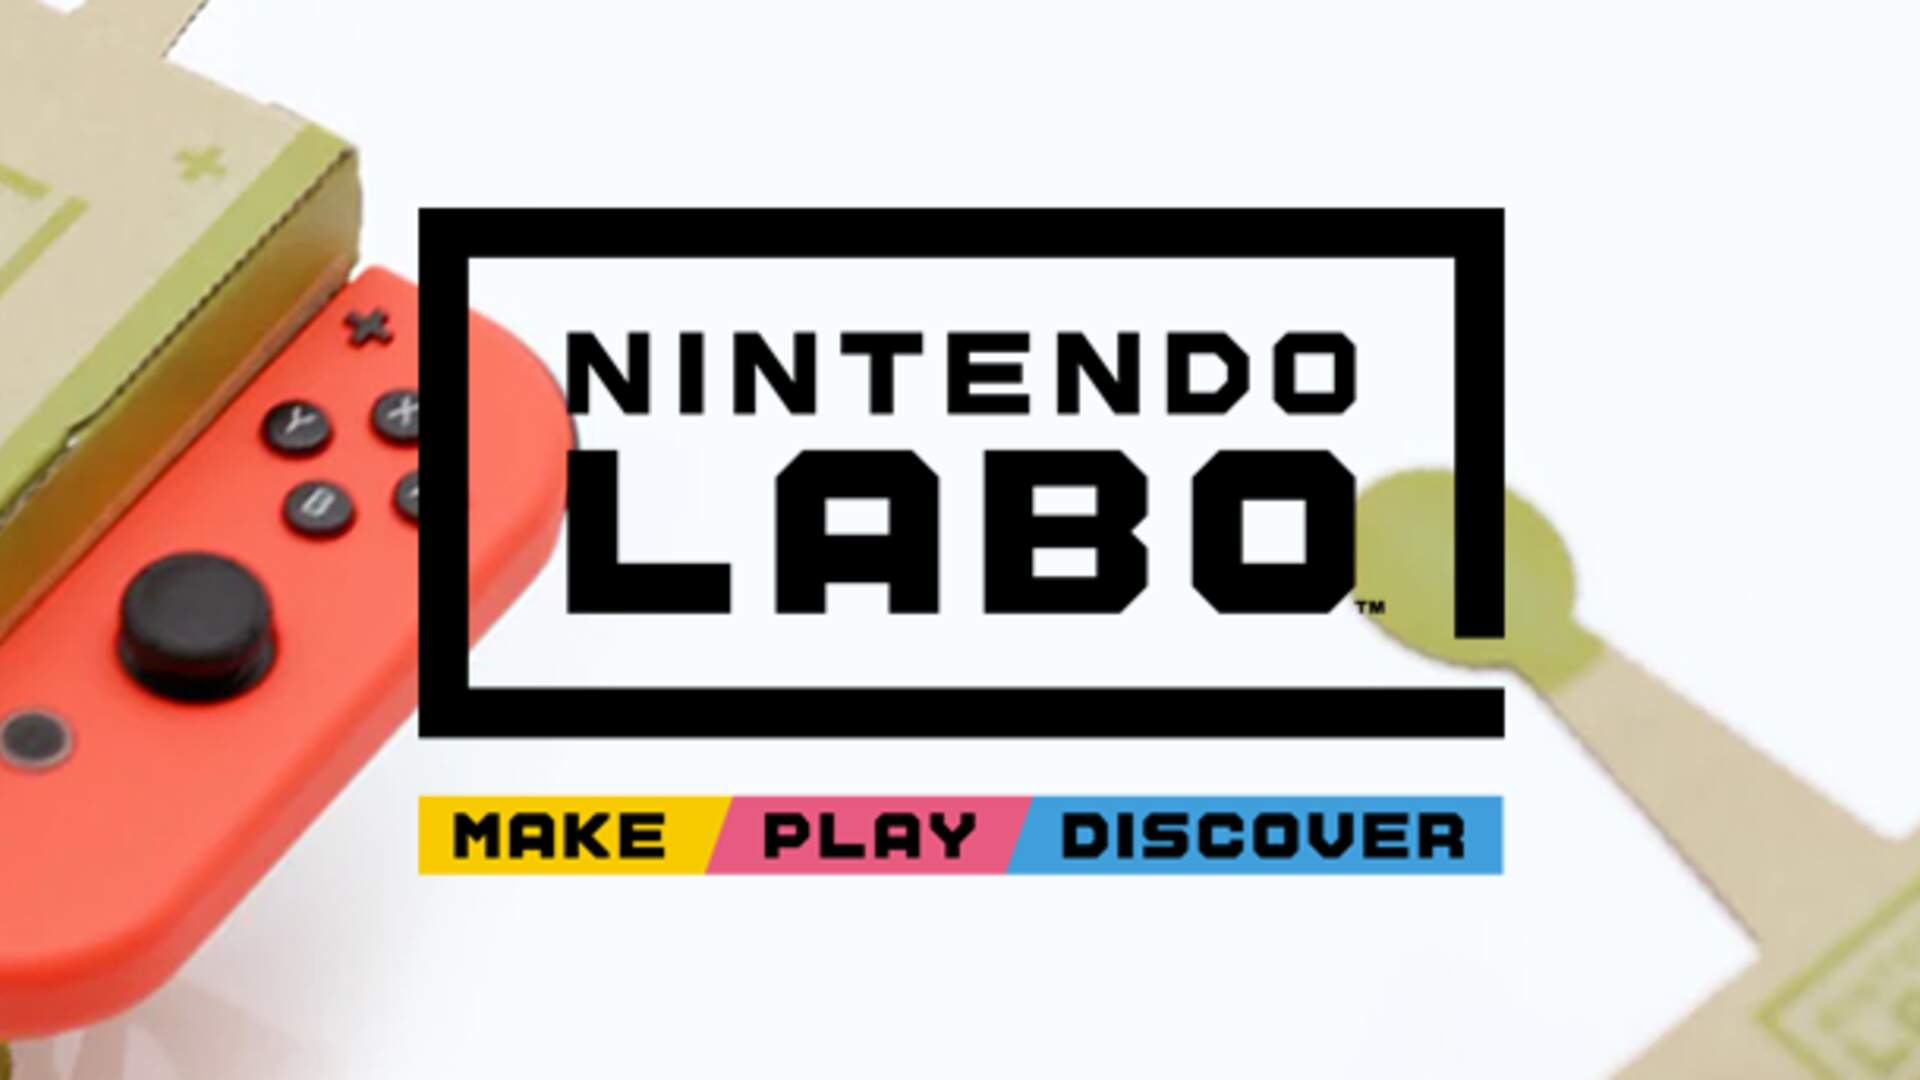 Nintendo Labo Has a New Feature That Lets You Program Custom Robots